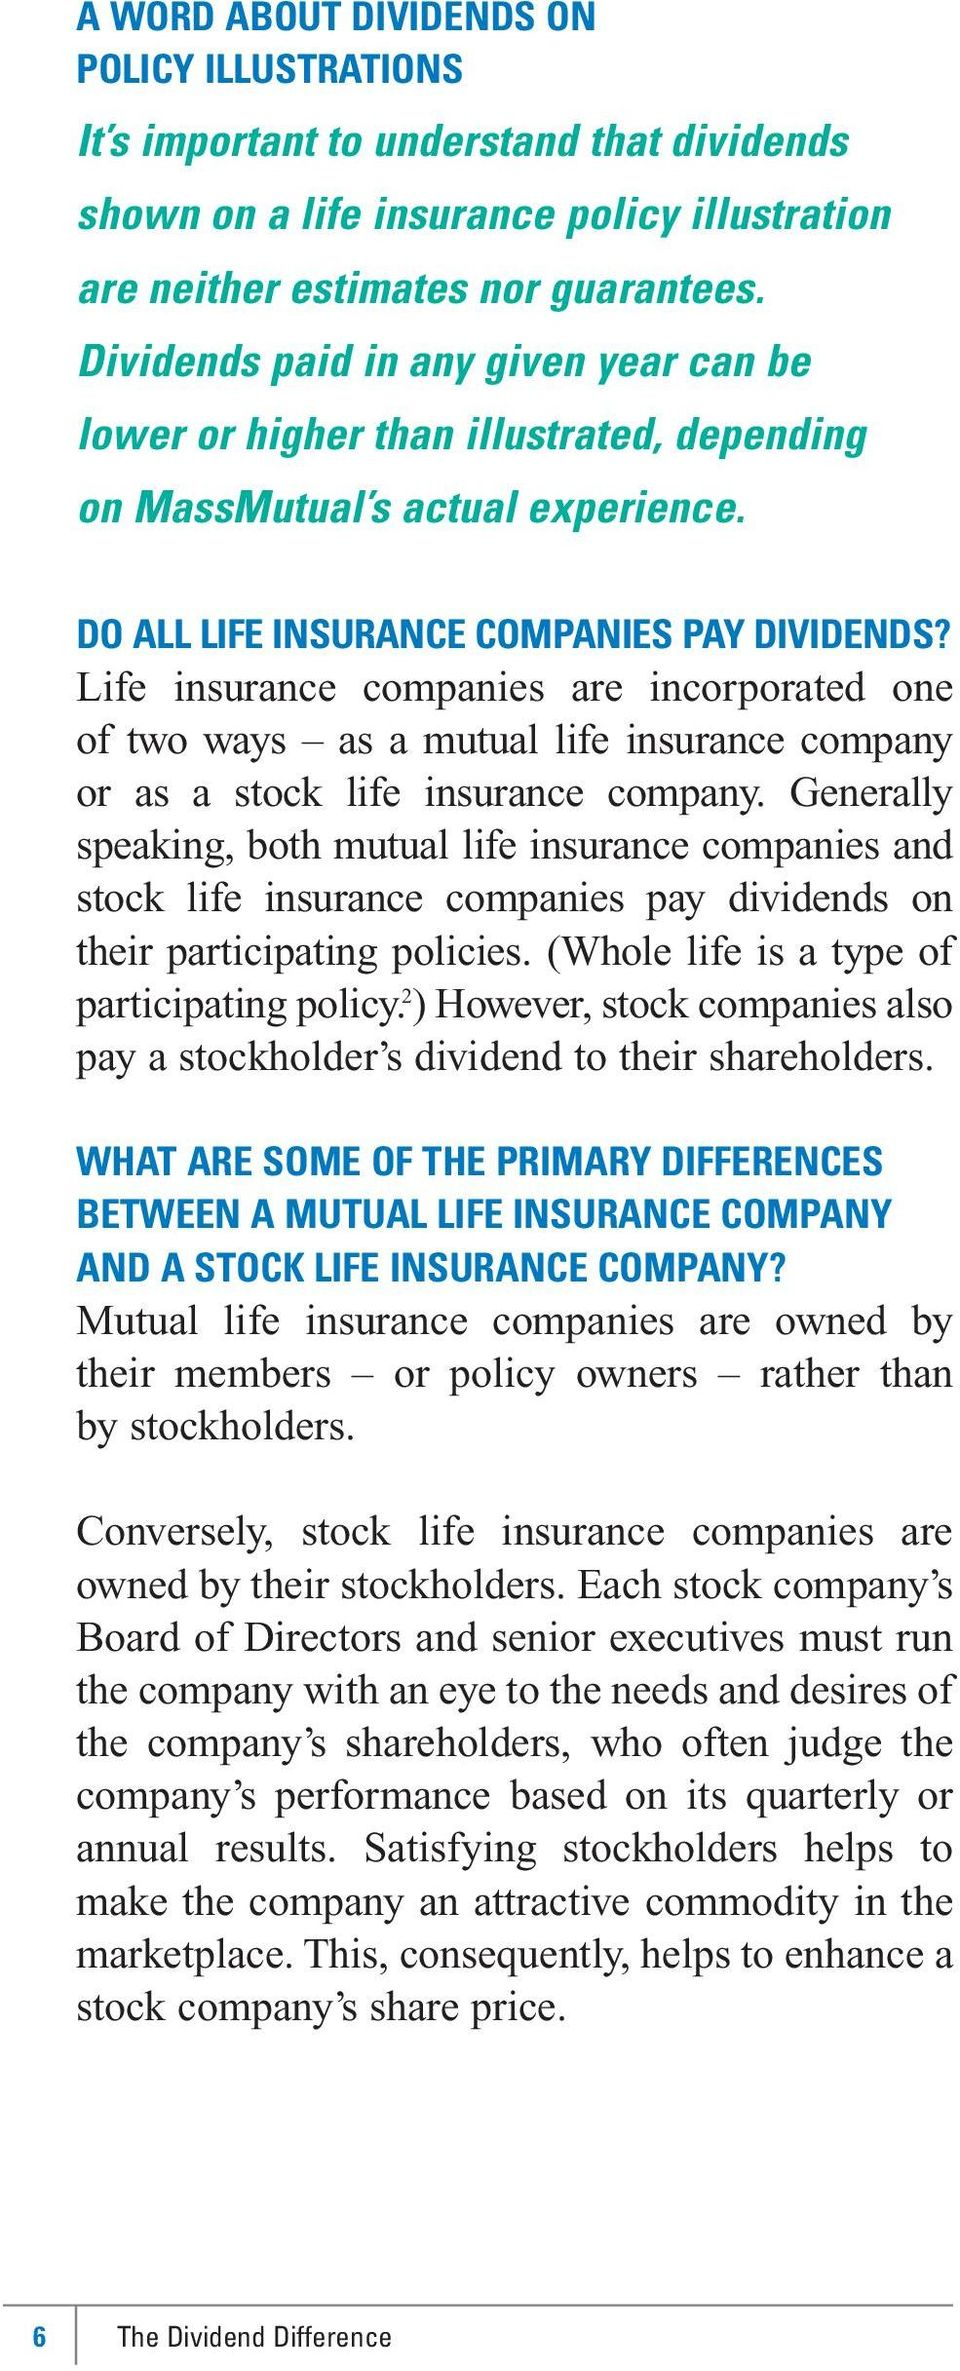 Life insurance companies are incorporated one of two ways as a mutual life insurance company or as a stock life insurance company.